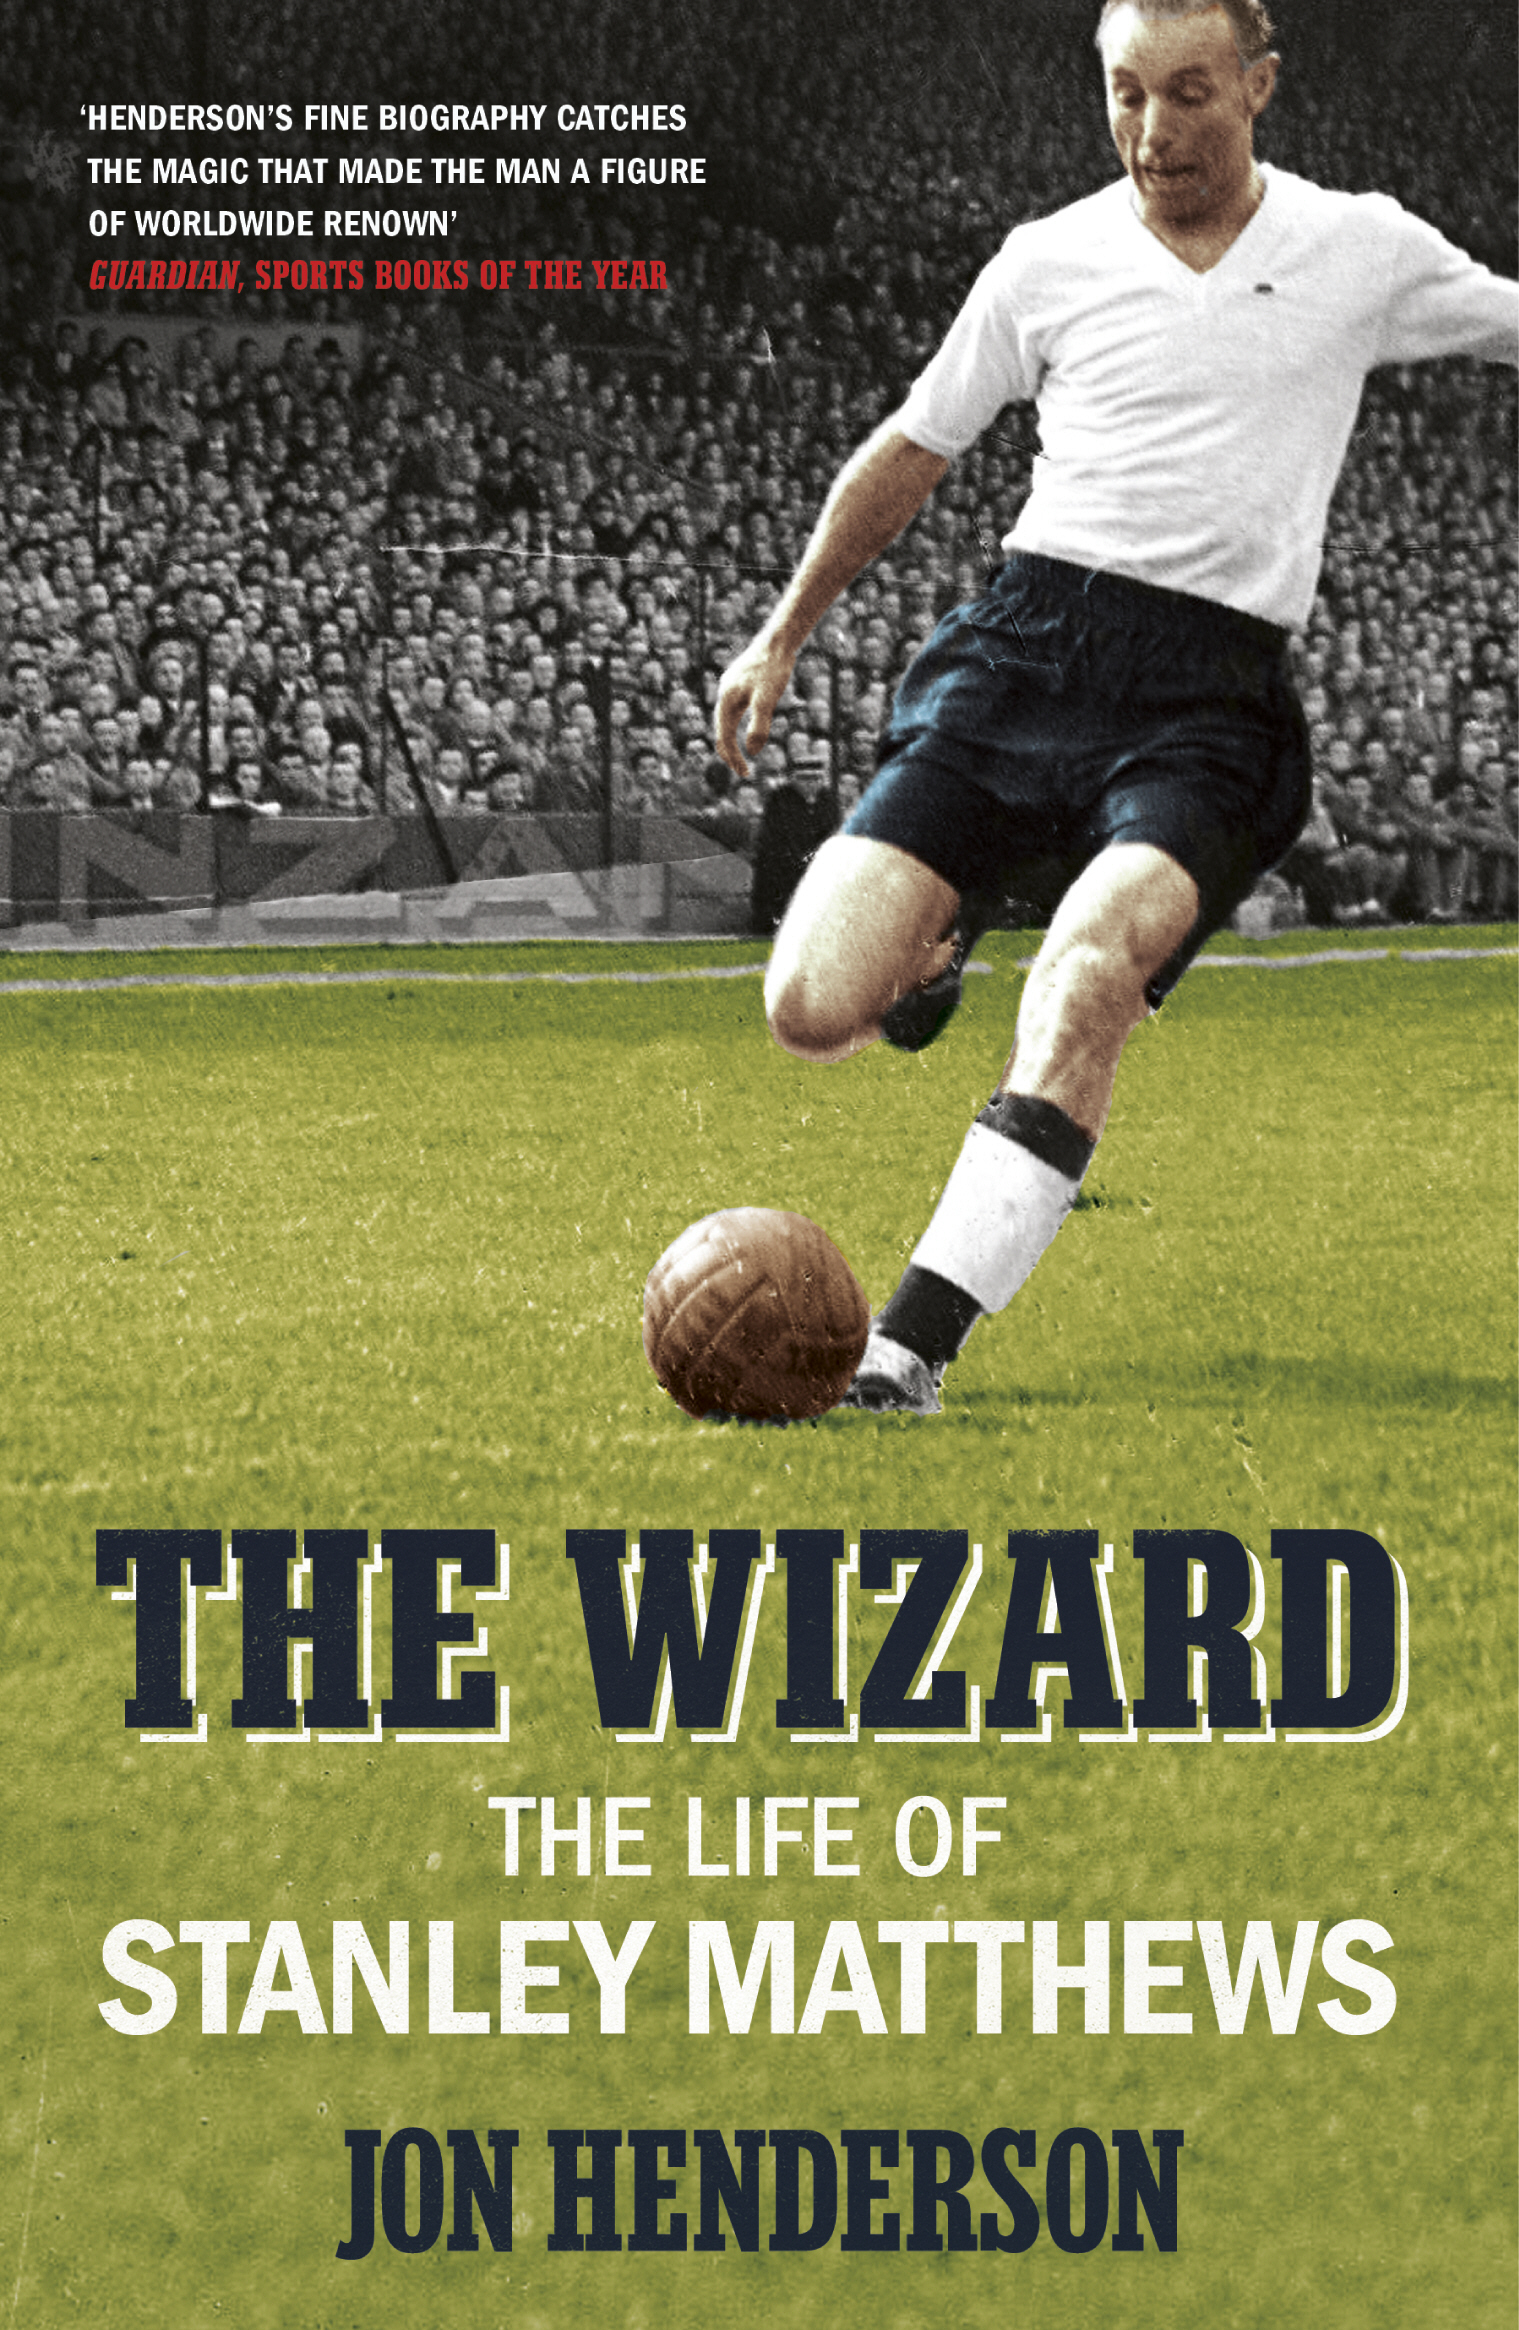 The Wizard The Life of Stanley Matthews